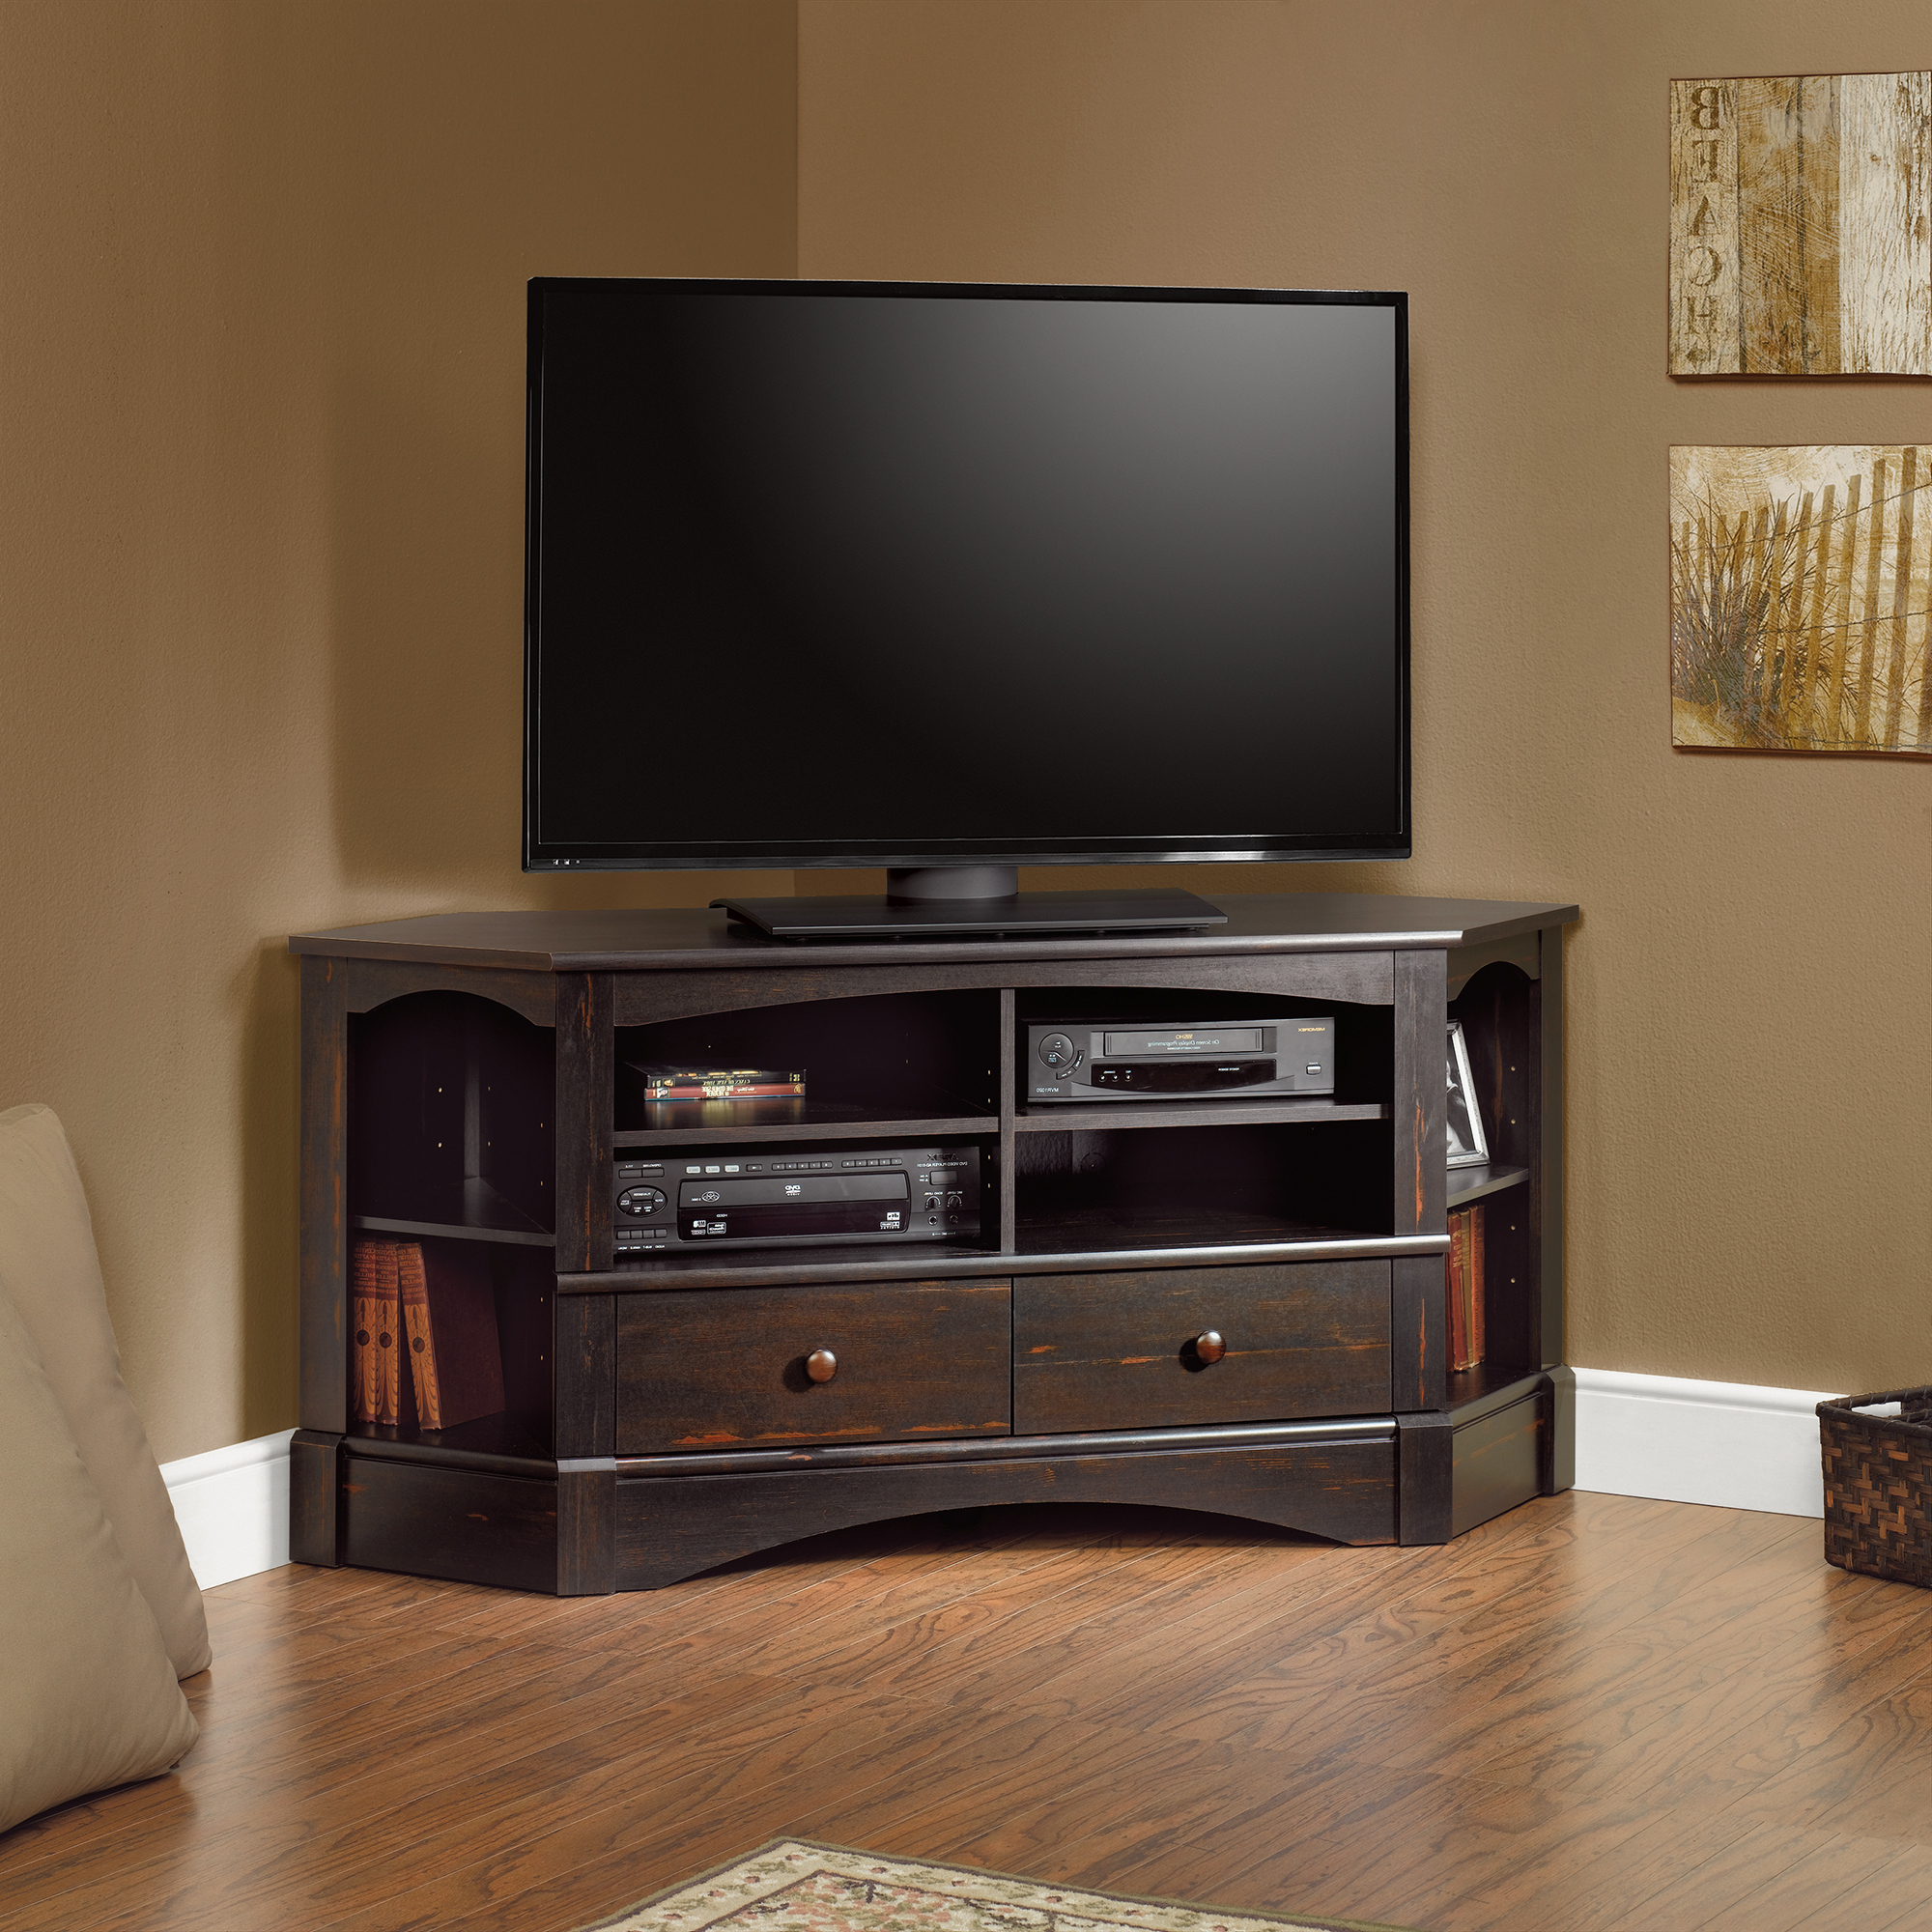 Sauder Throughout Well Liked Large Corner Tv Cabinets (Gallery 3 of 20)